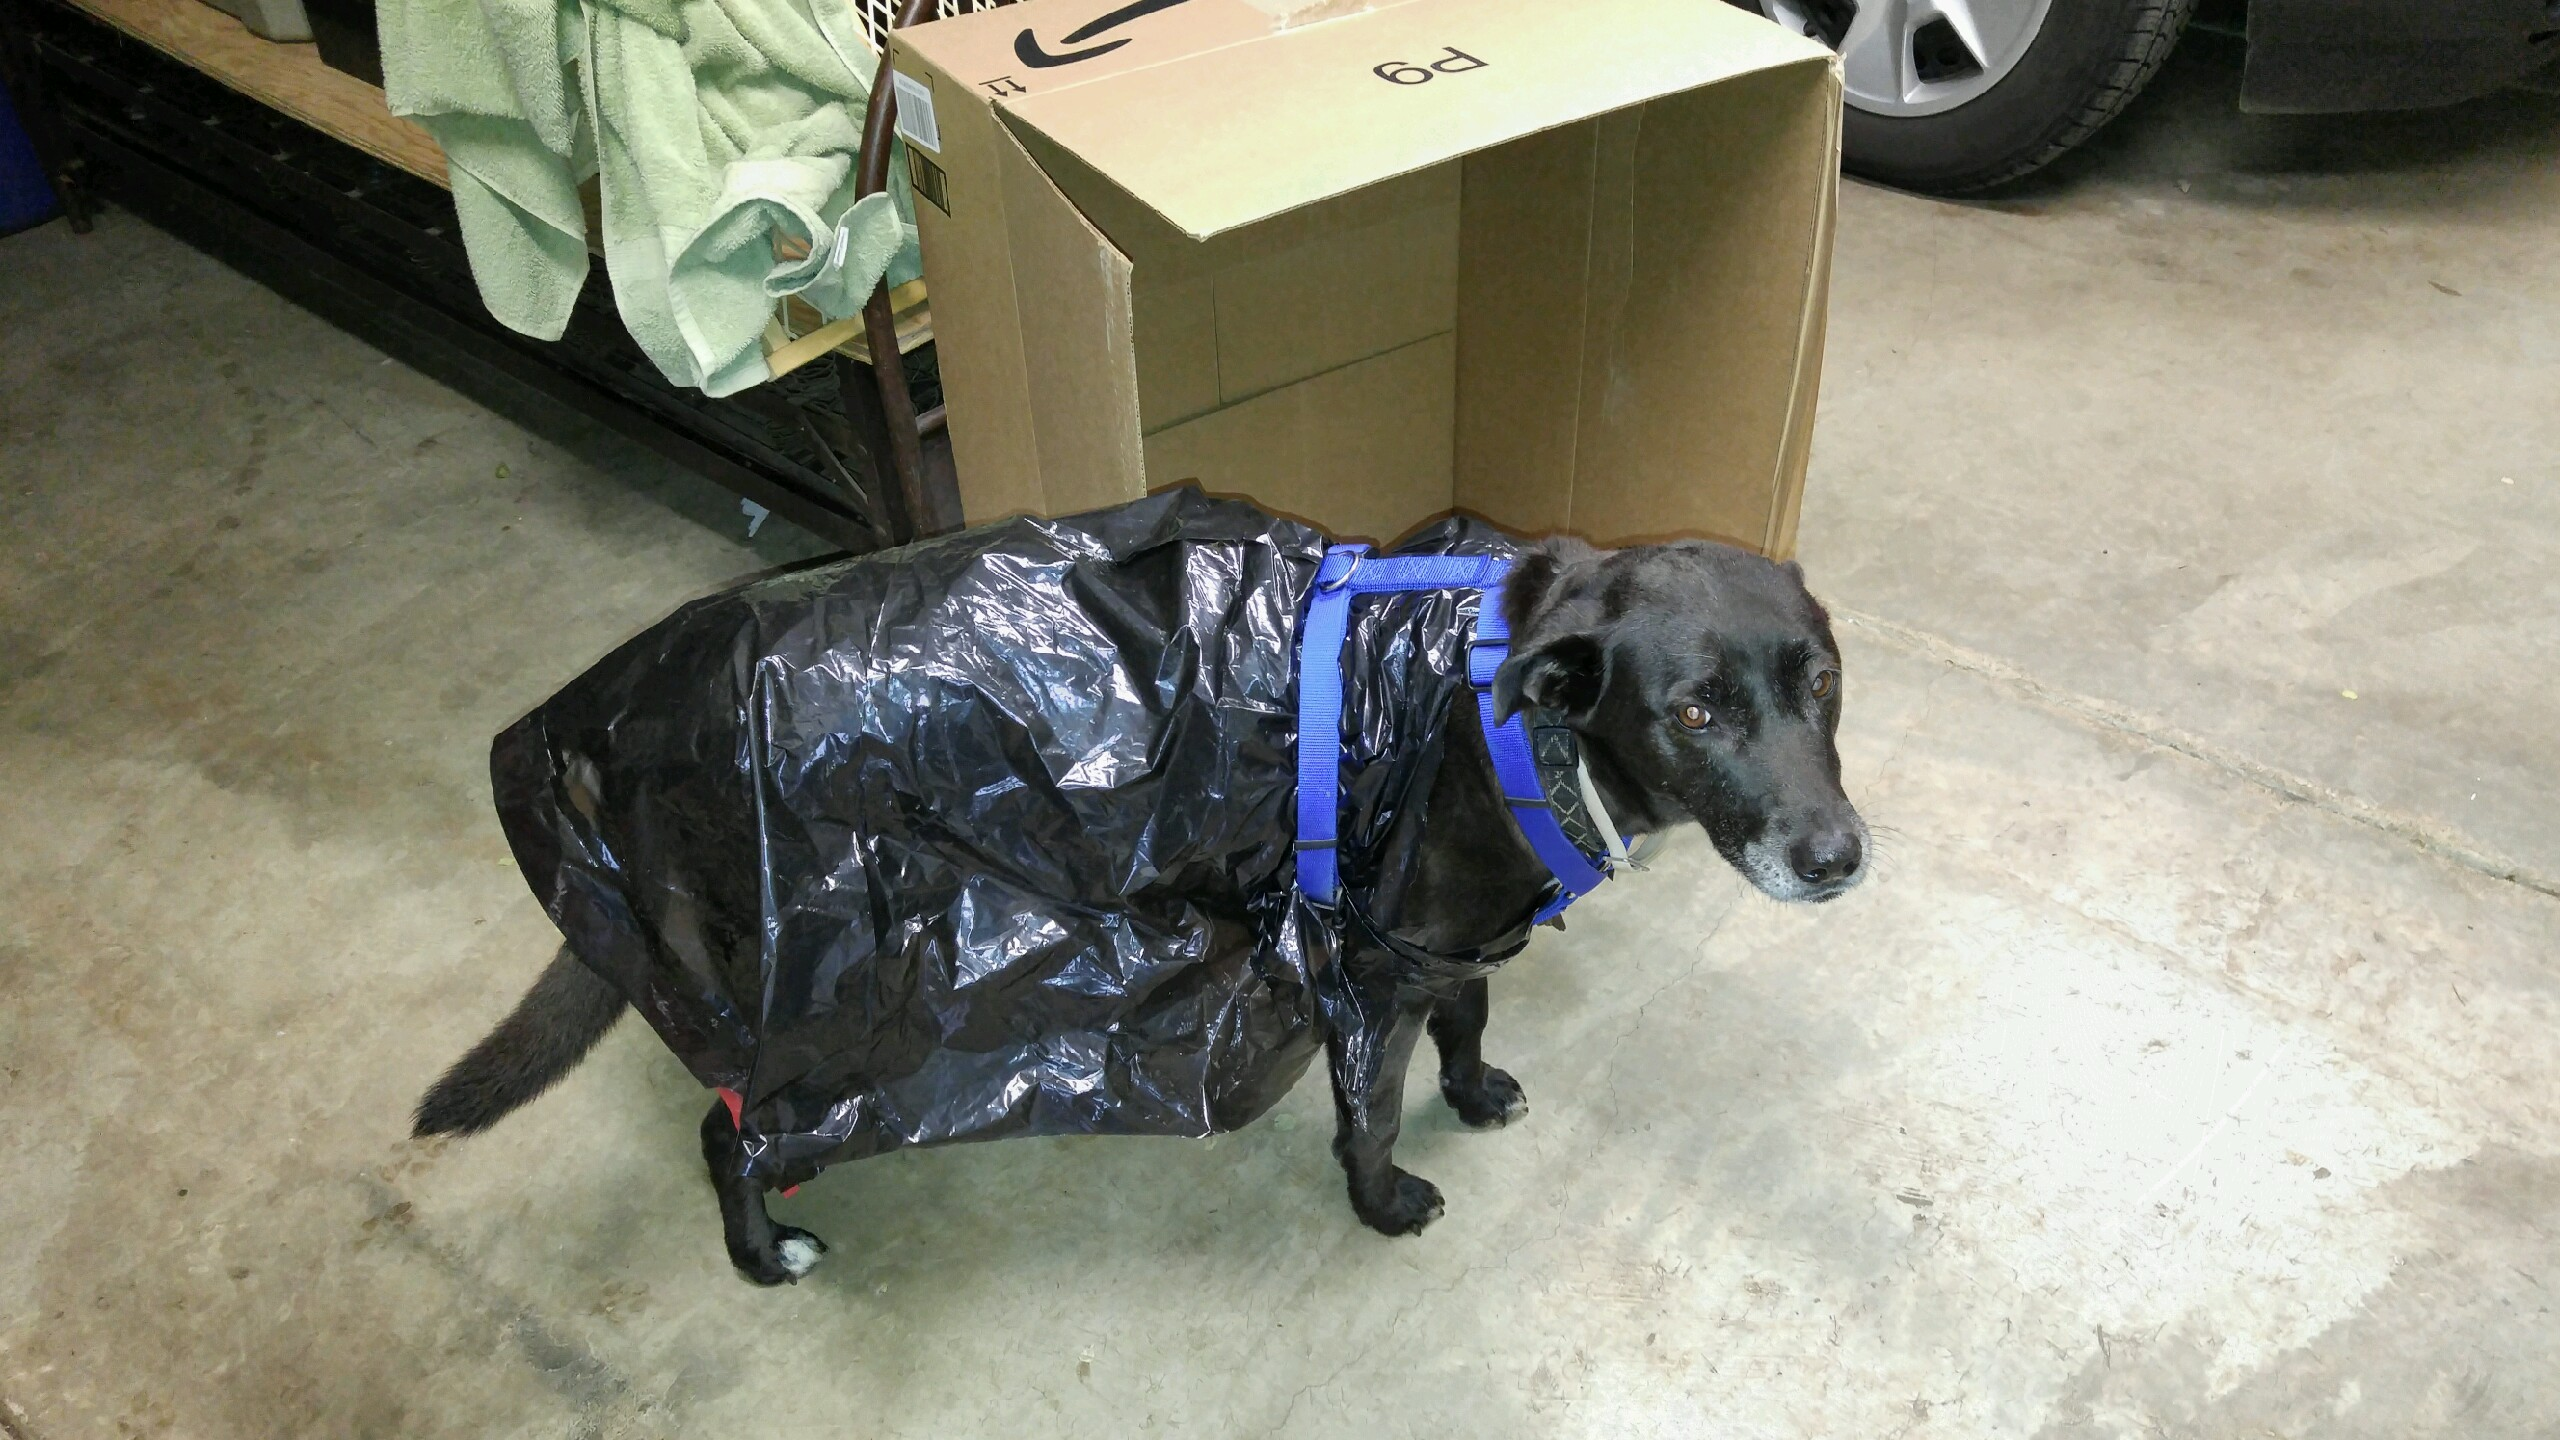 She was not thrilled about the raincoat.